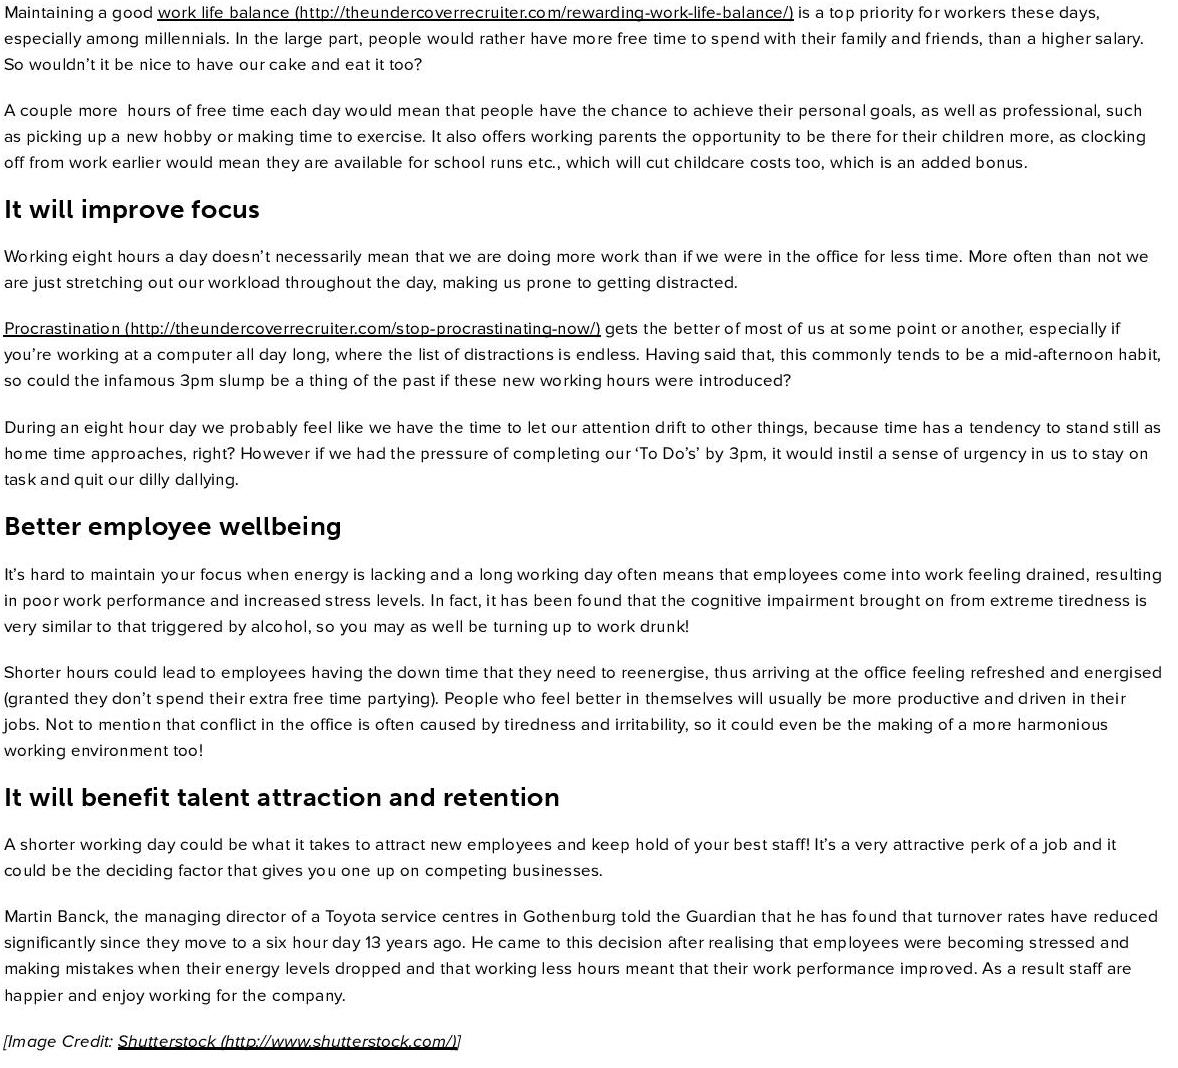 What Are the Benefits of a Shorter Work Day_-page-002.jpg